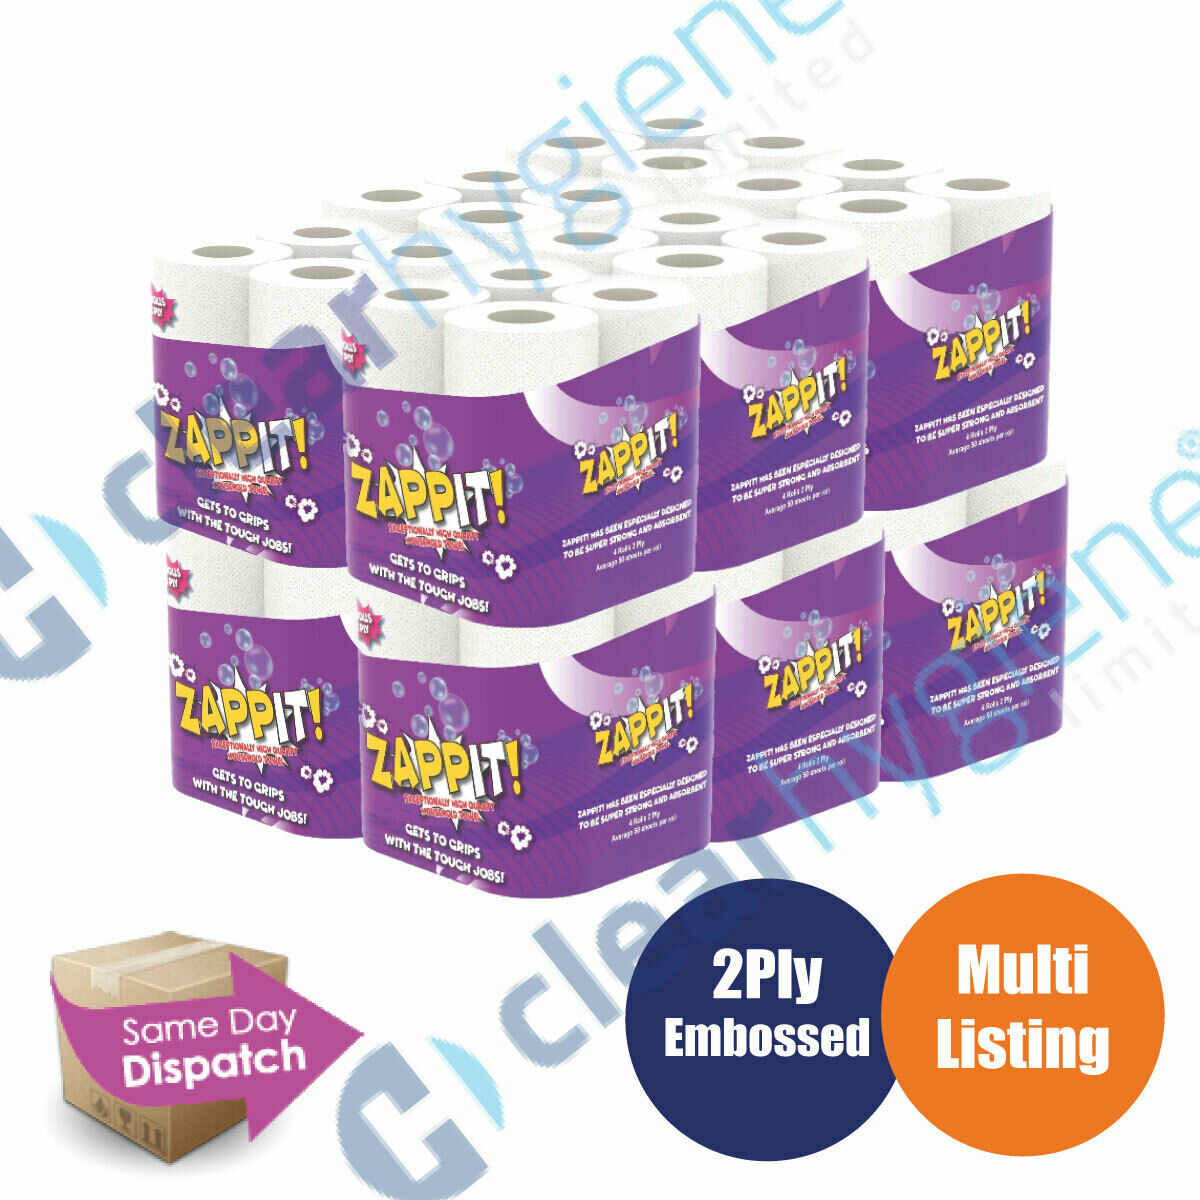 48 Rolls Zappit Kitchen Roll Micro Absorbent Technology